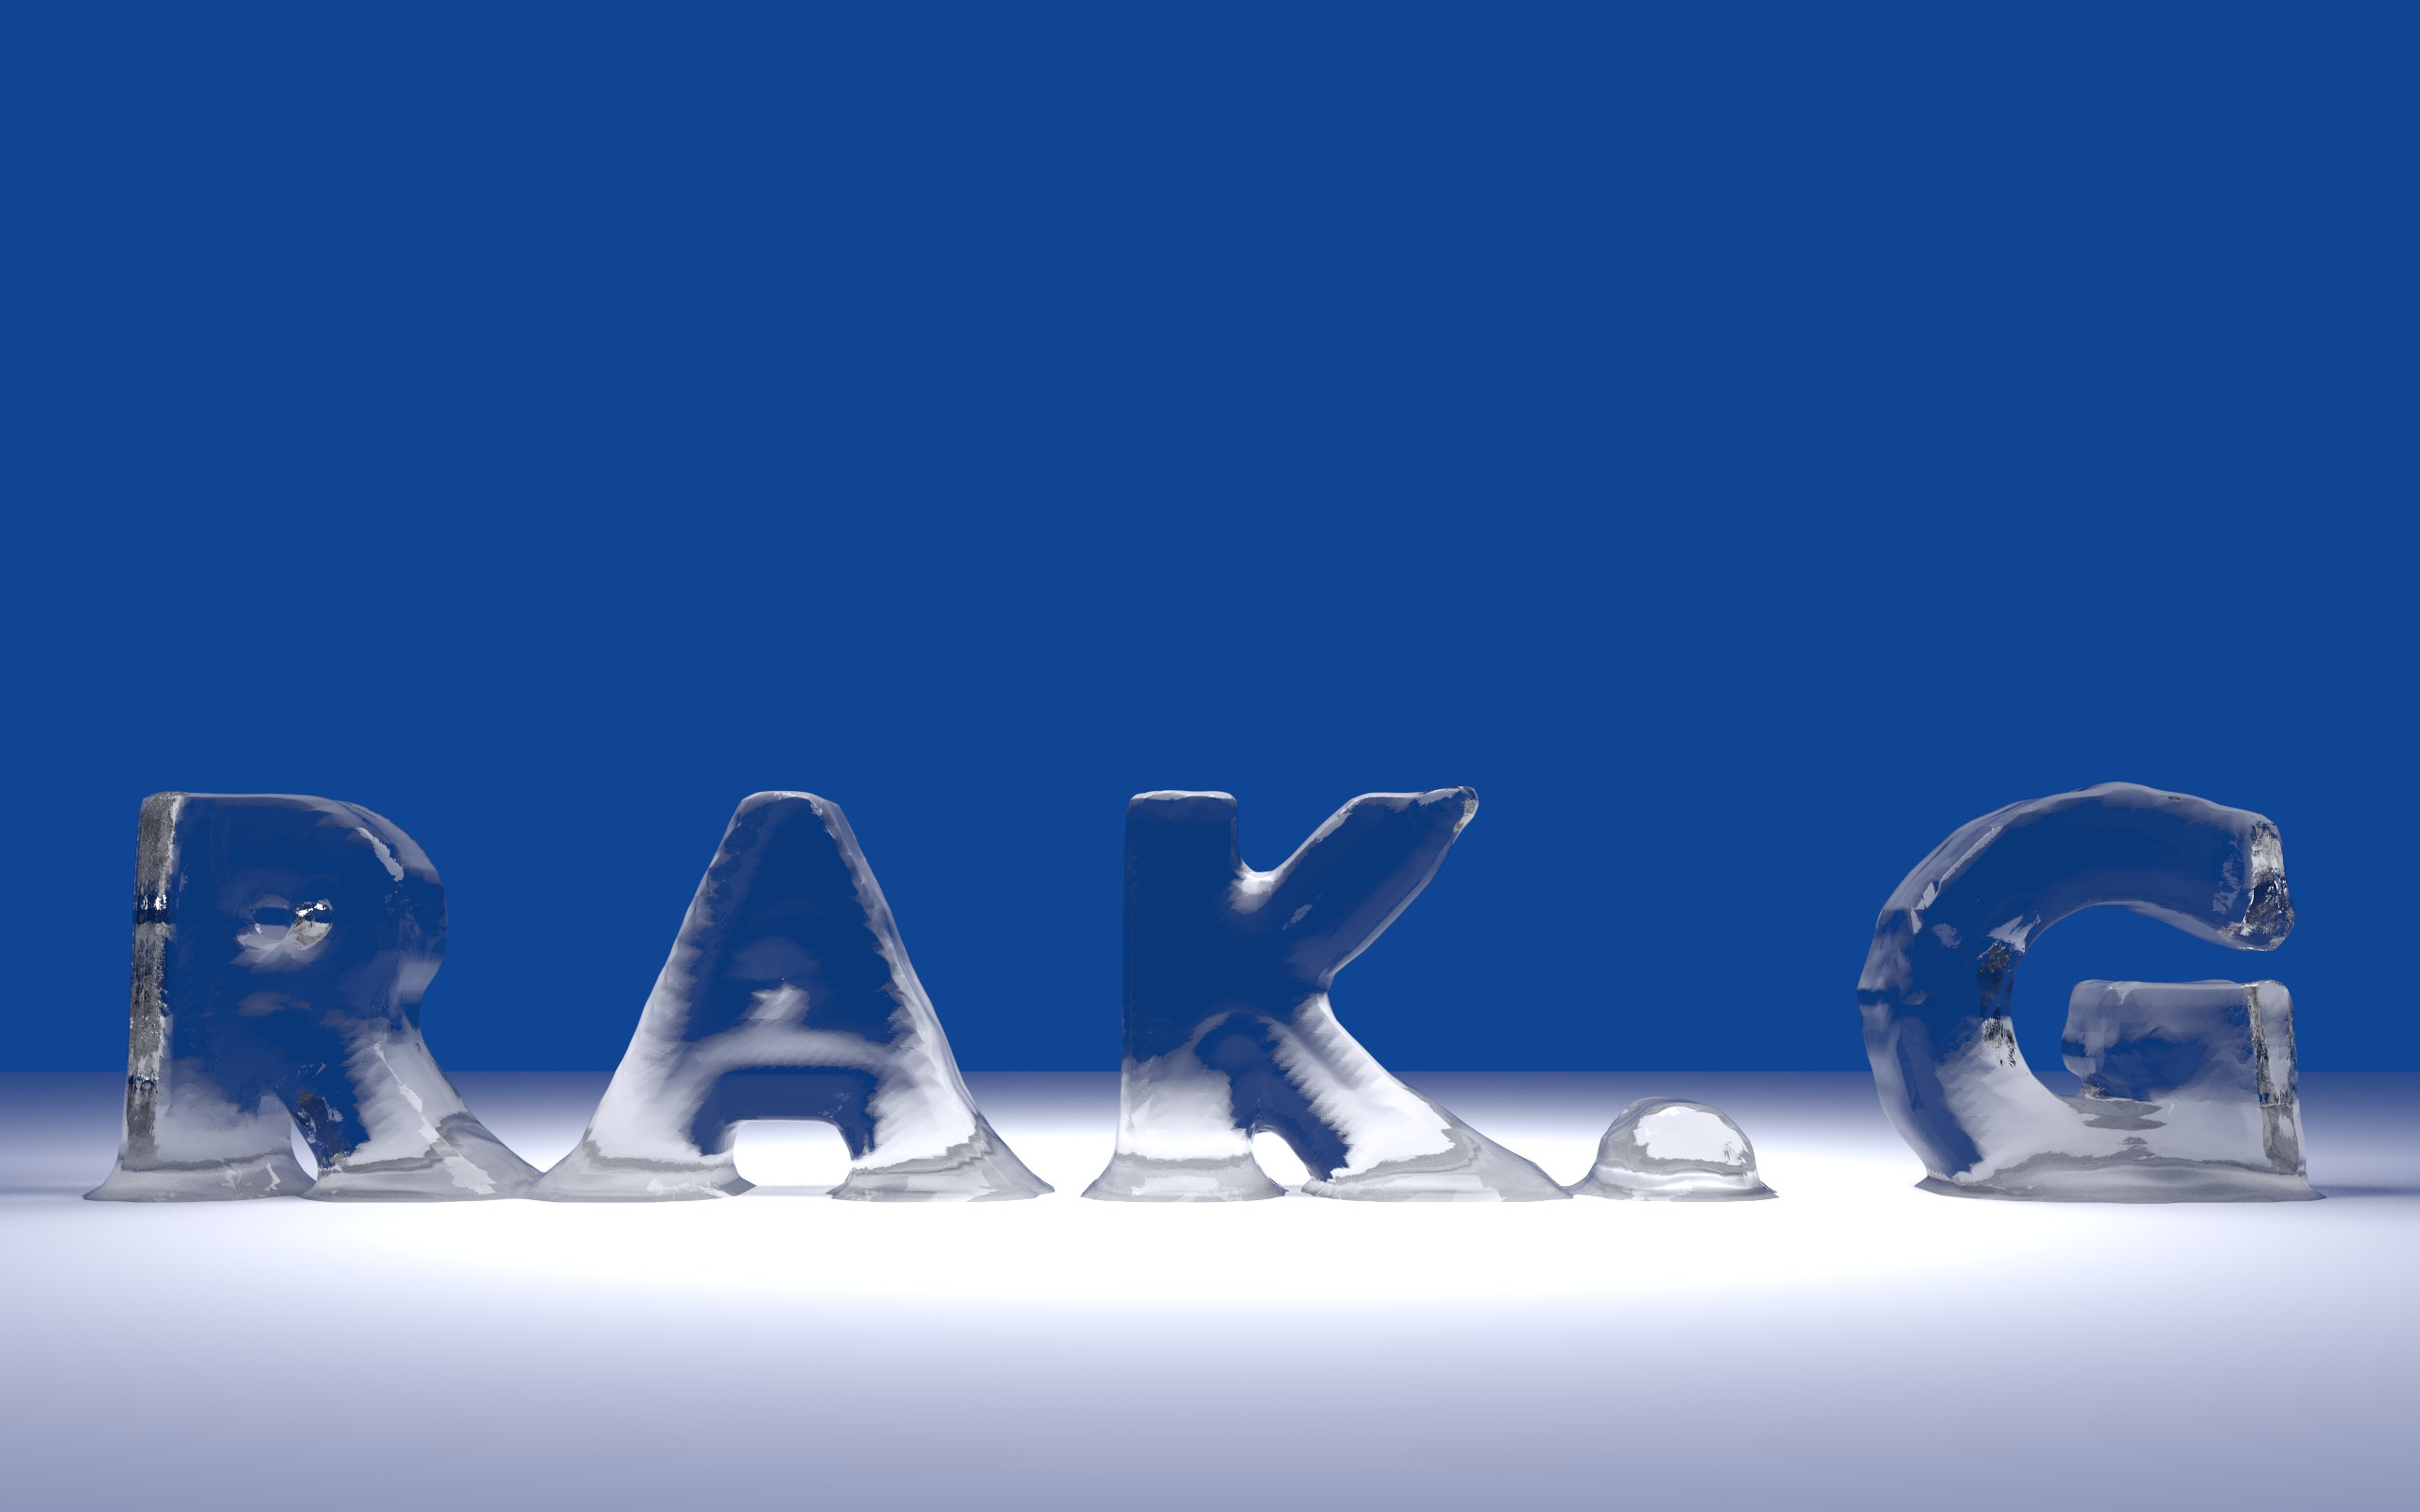 Icetext explore icetext on deviantart lonewolftifa 1 0 blender ice text cycles by krzywyzielarz baditri Images